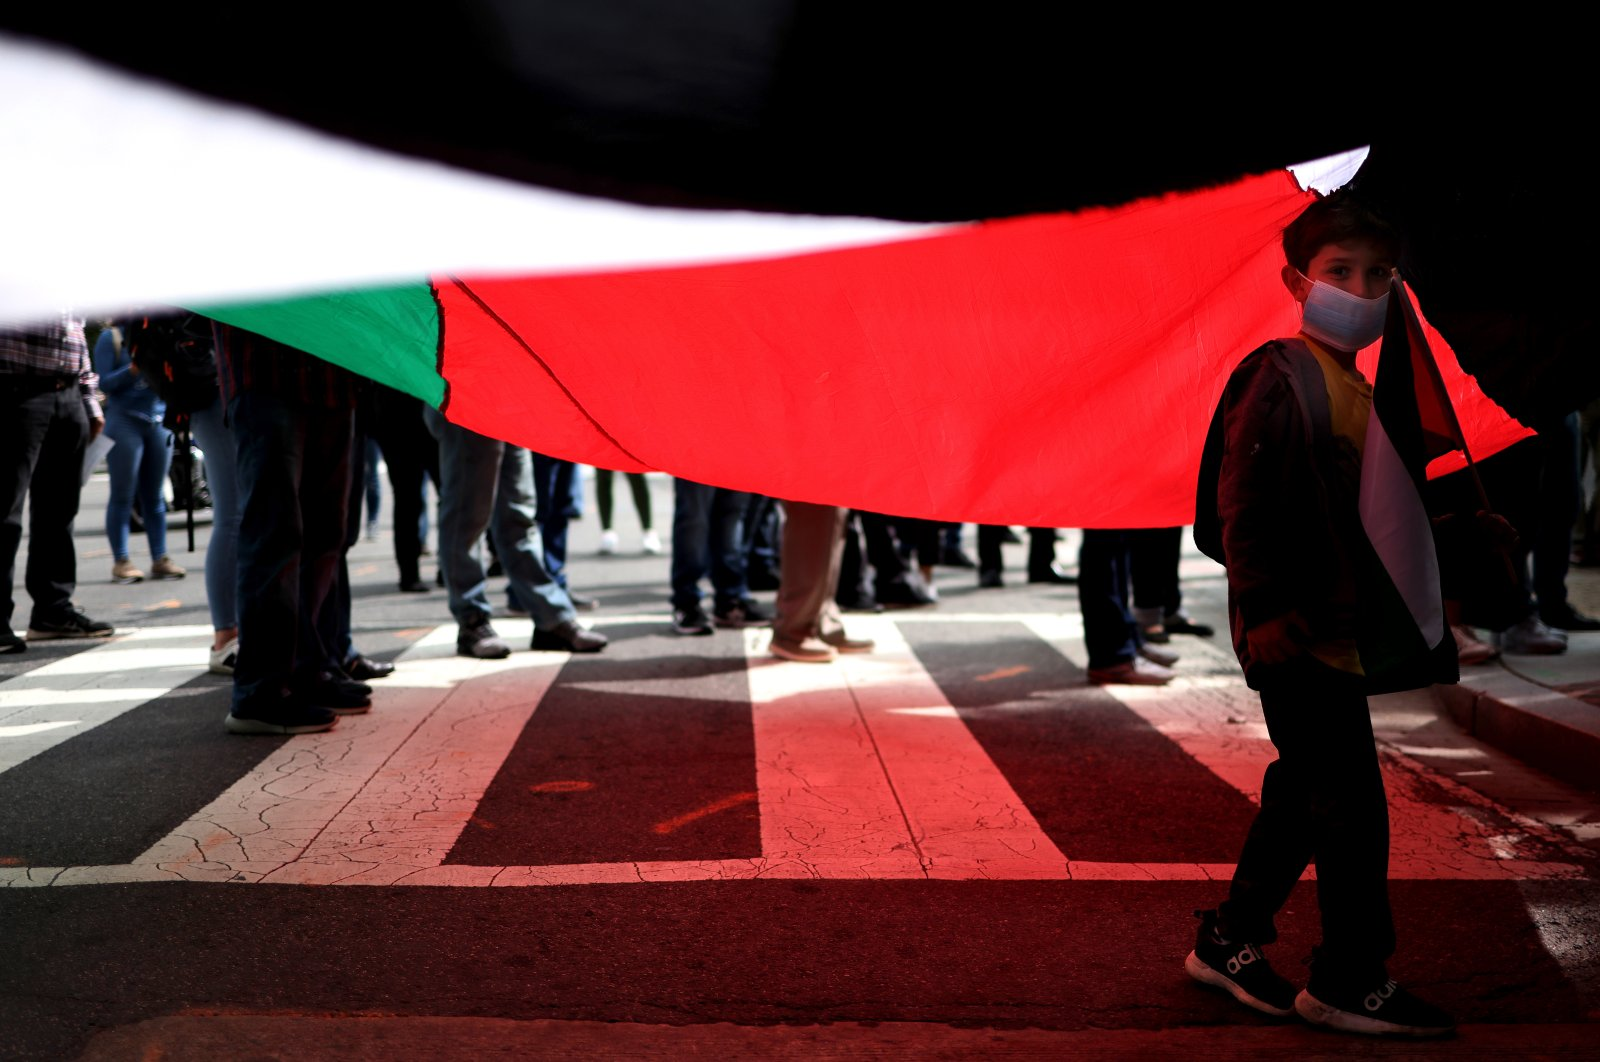 A young boy stands beneath a Palestinian flag as protesters from multiple Palestinian rights organizations demonstrate outside the White House, Washington, D.C., U.S., Sept. 15, 2020. (Photo by Getty Images)